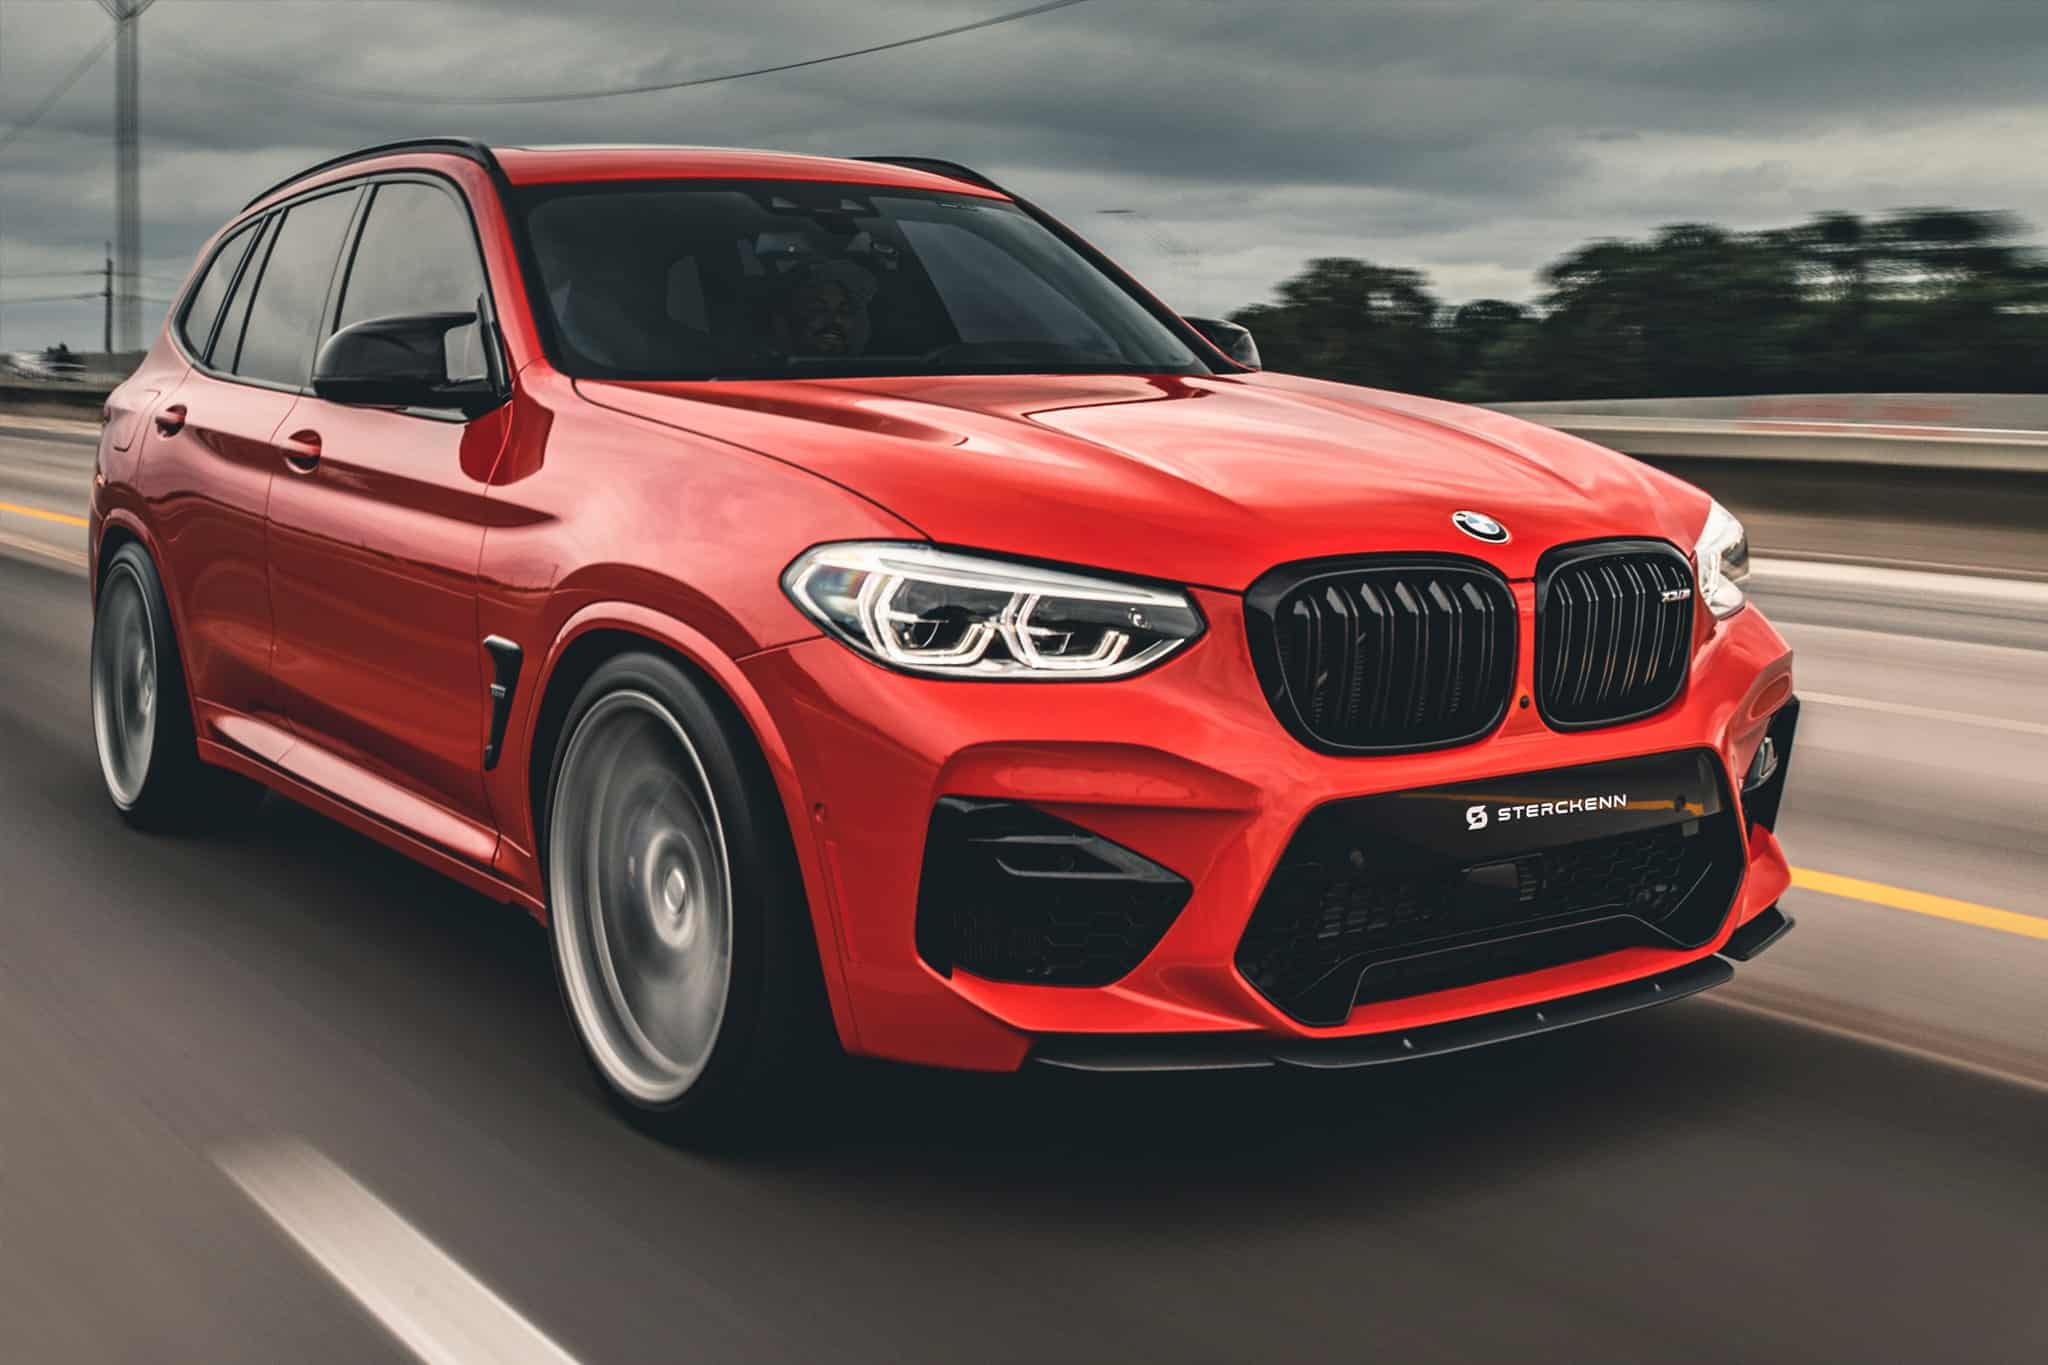 BMW X3M & X4M gets visual upgrades from Sterckenn